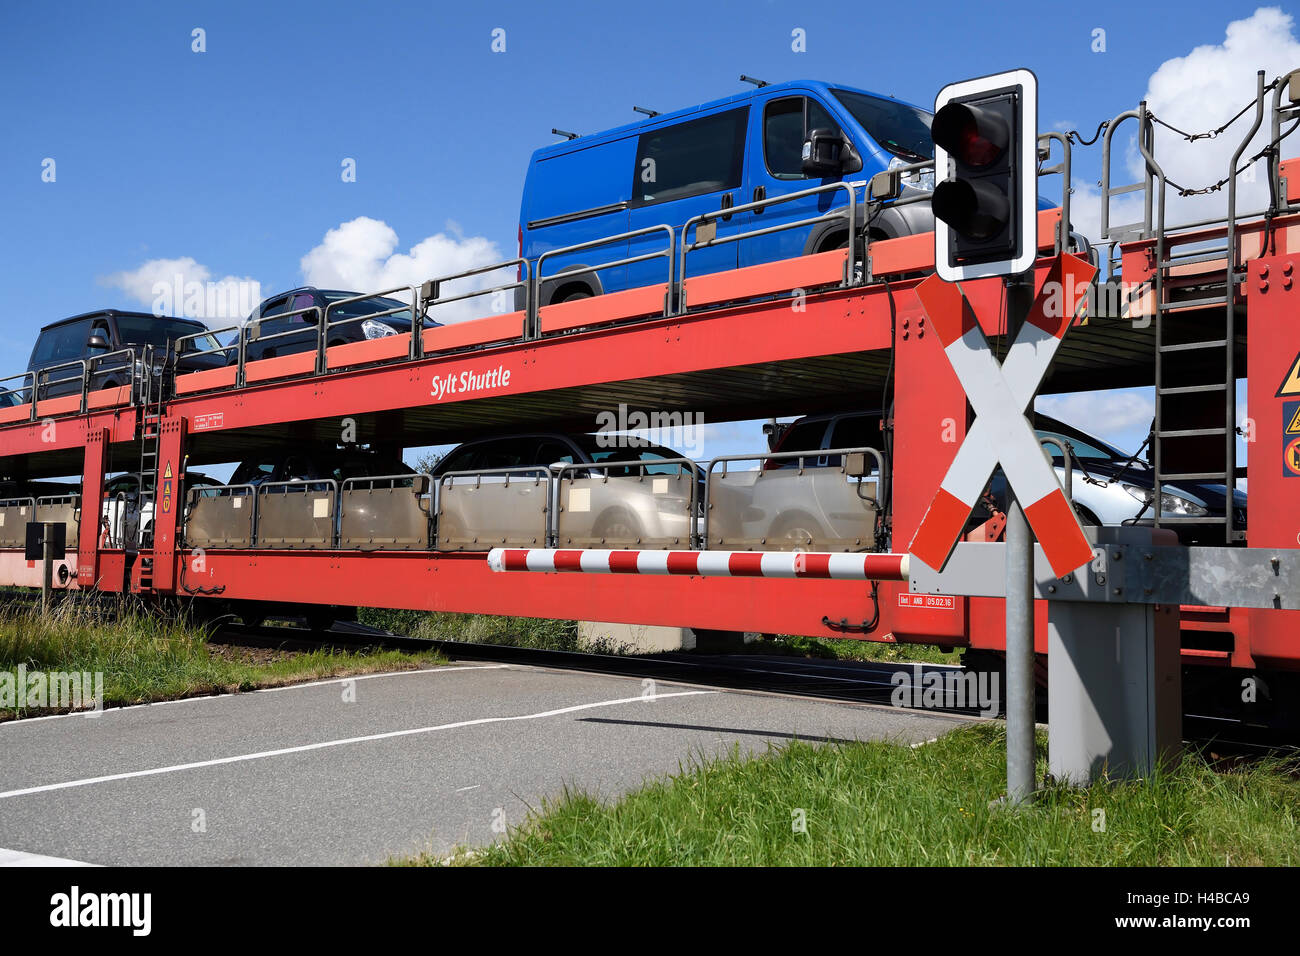 Railroad crossing, car train, Sylt Shuttle, connecting the island of Sylt with the mainland, Sylt, North Frisian - Stock Image